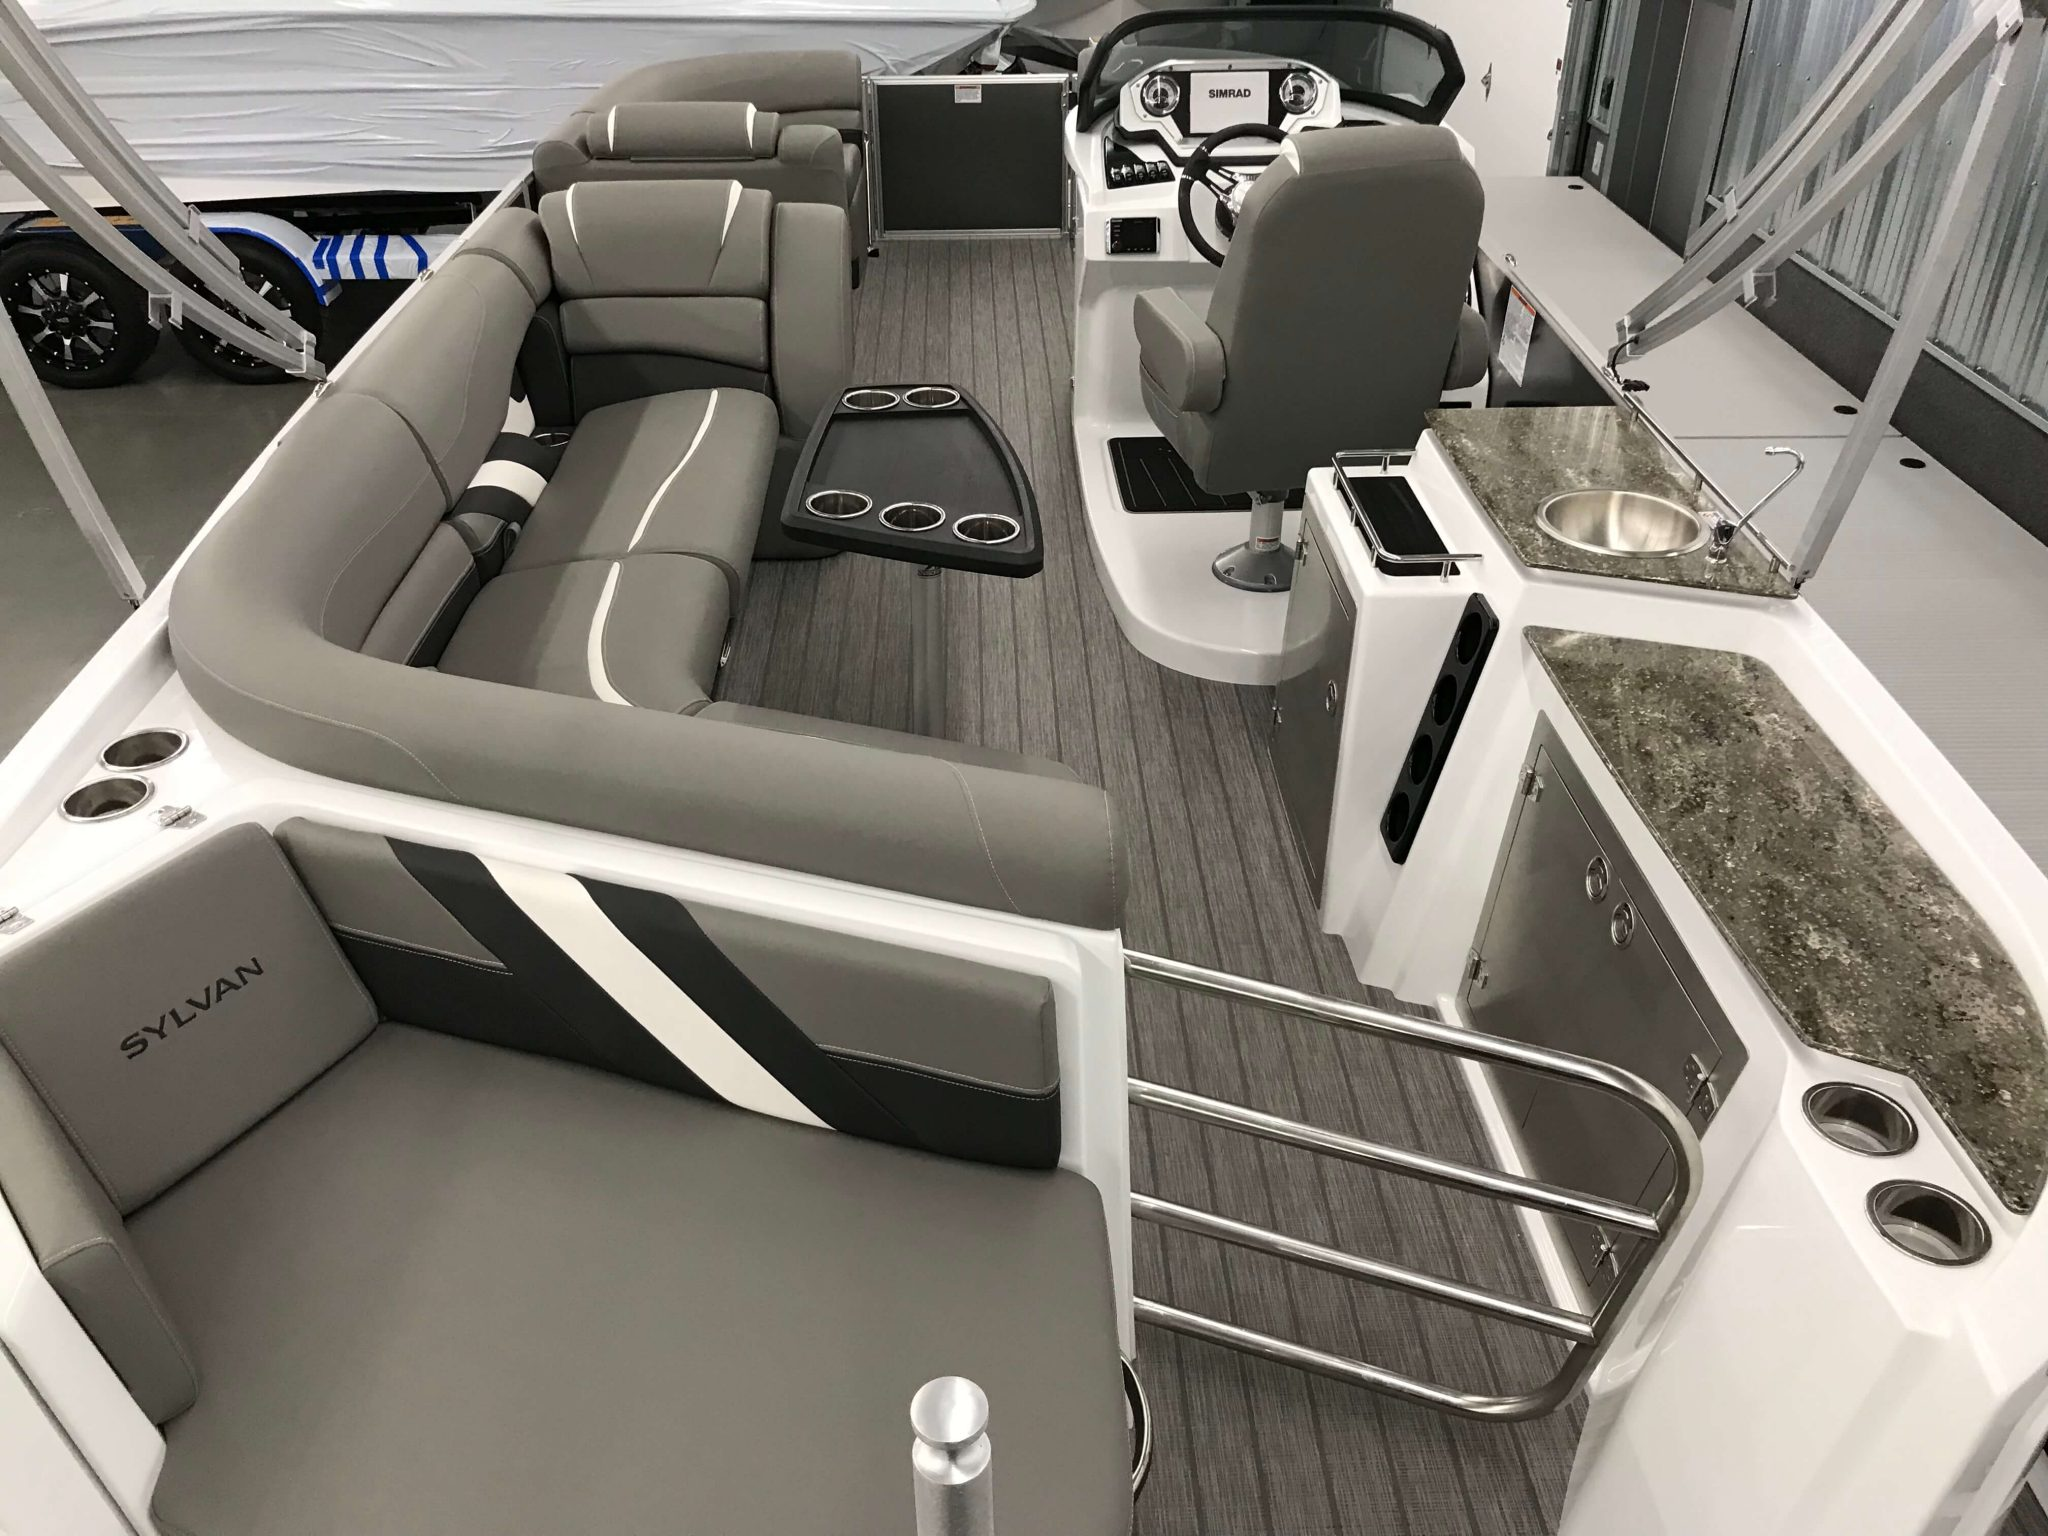 2019 Sylvan S3 Cruise Tritoon Interior Cockpit Layout 1